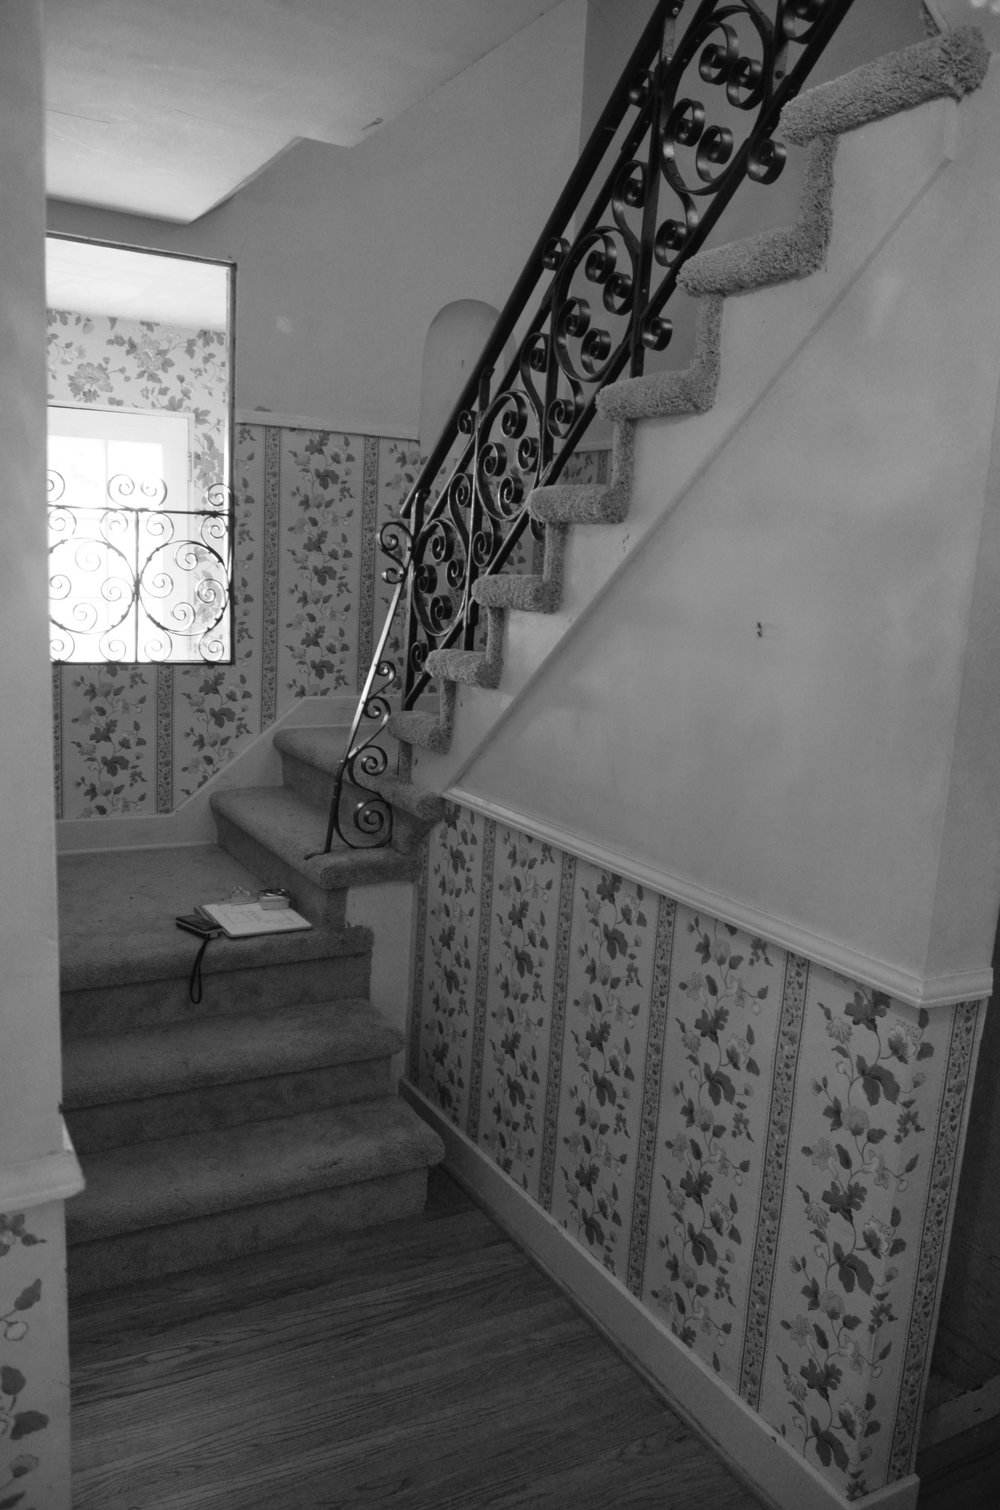 ENTRY STAIR BEFORE